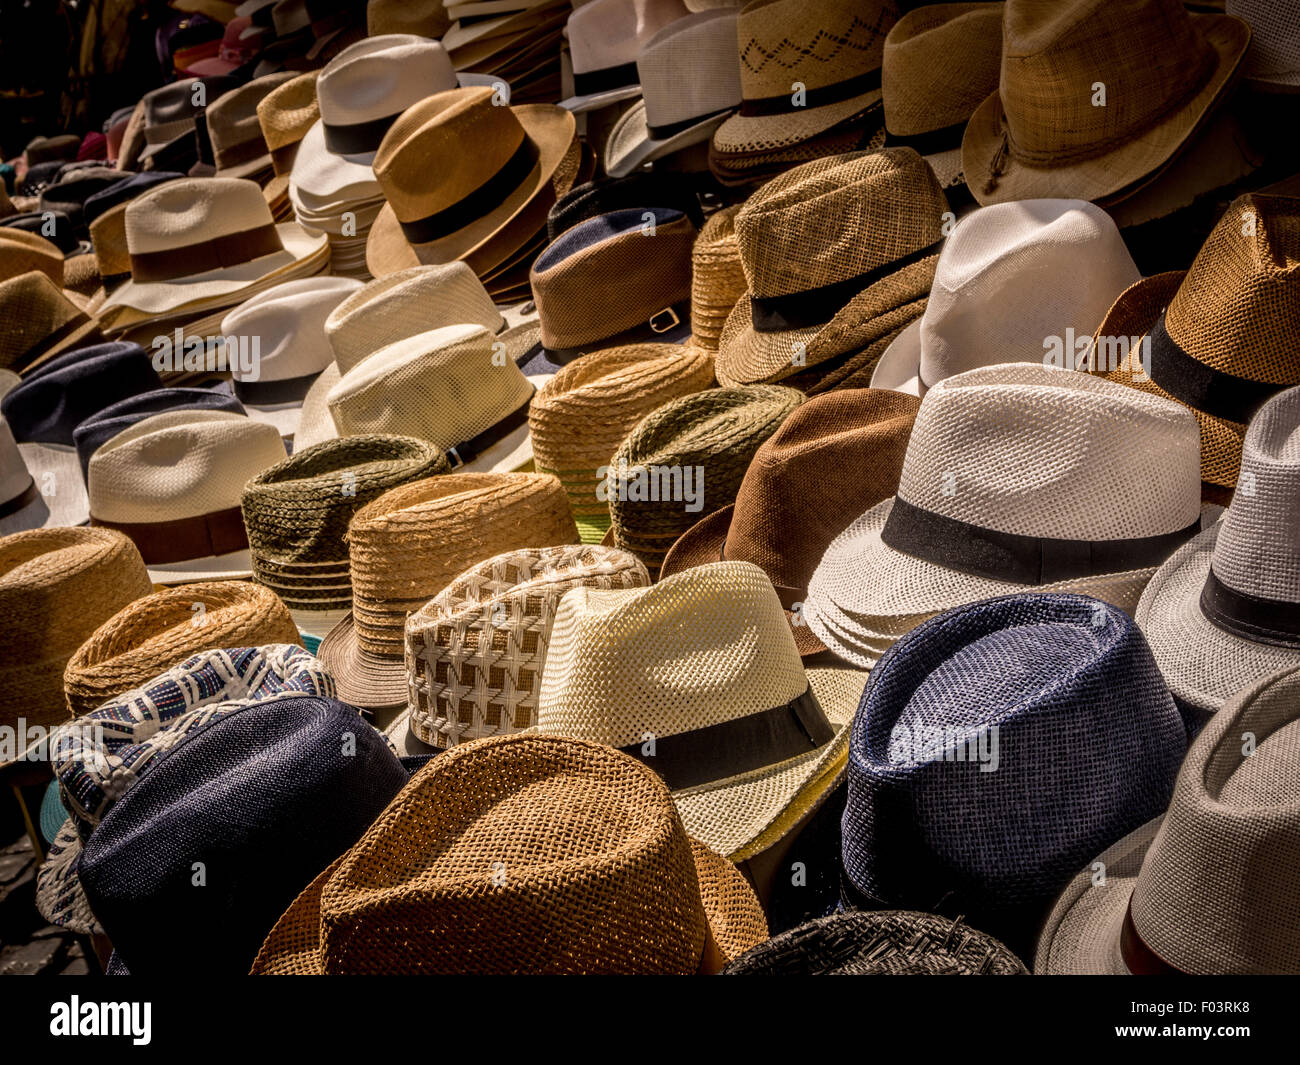 74862a0b2417e3 Stall selling men's straw trilby style hats. Campo de' Fiori outdoor food  market in Rome., Italy.